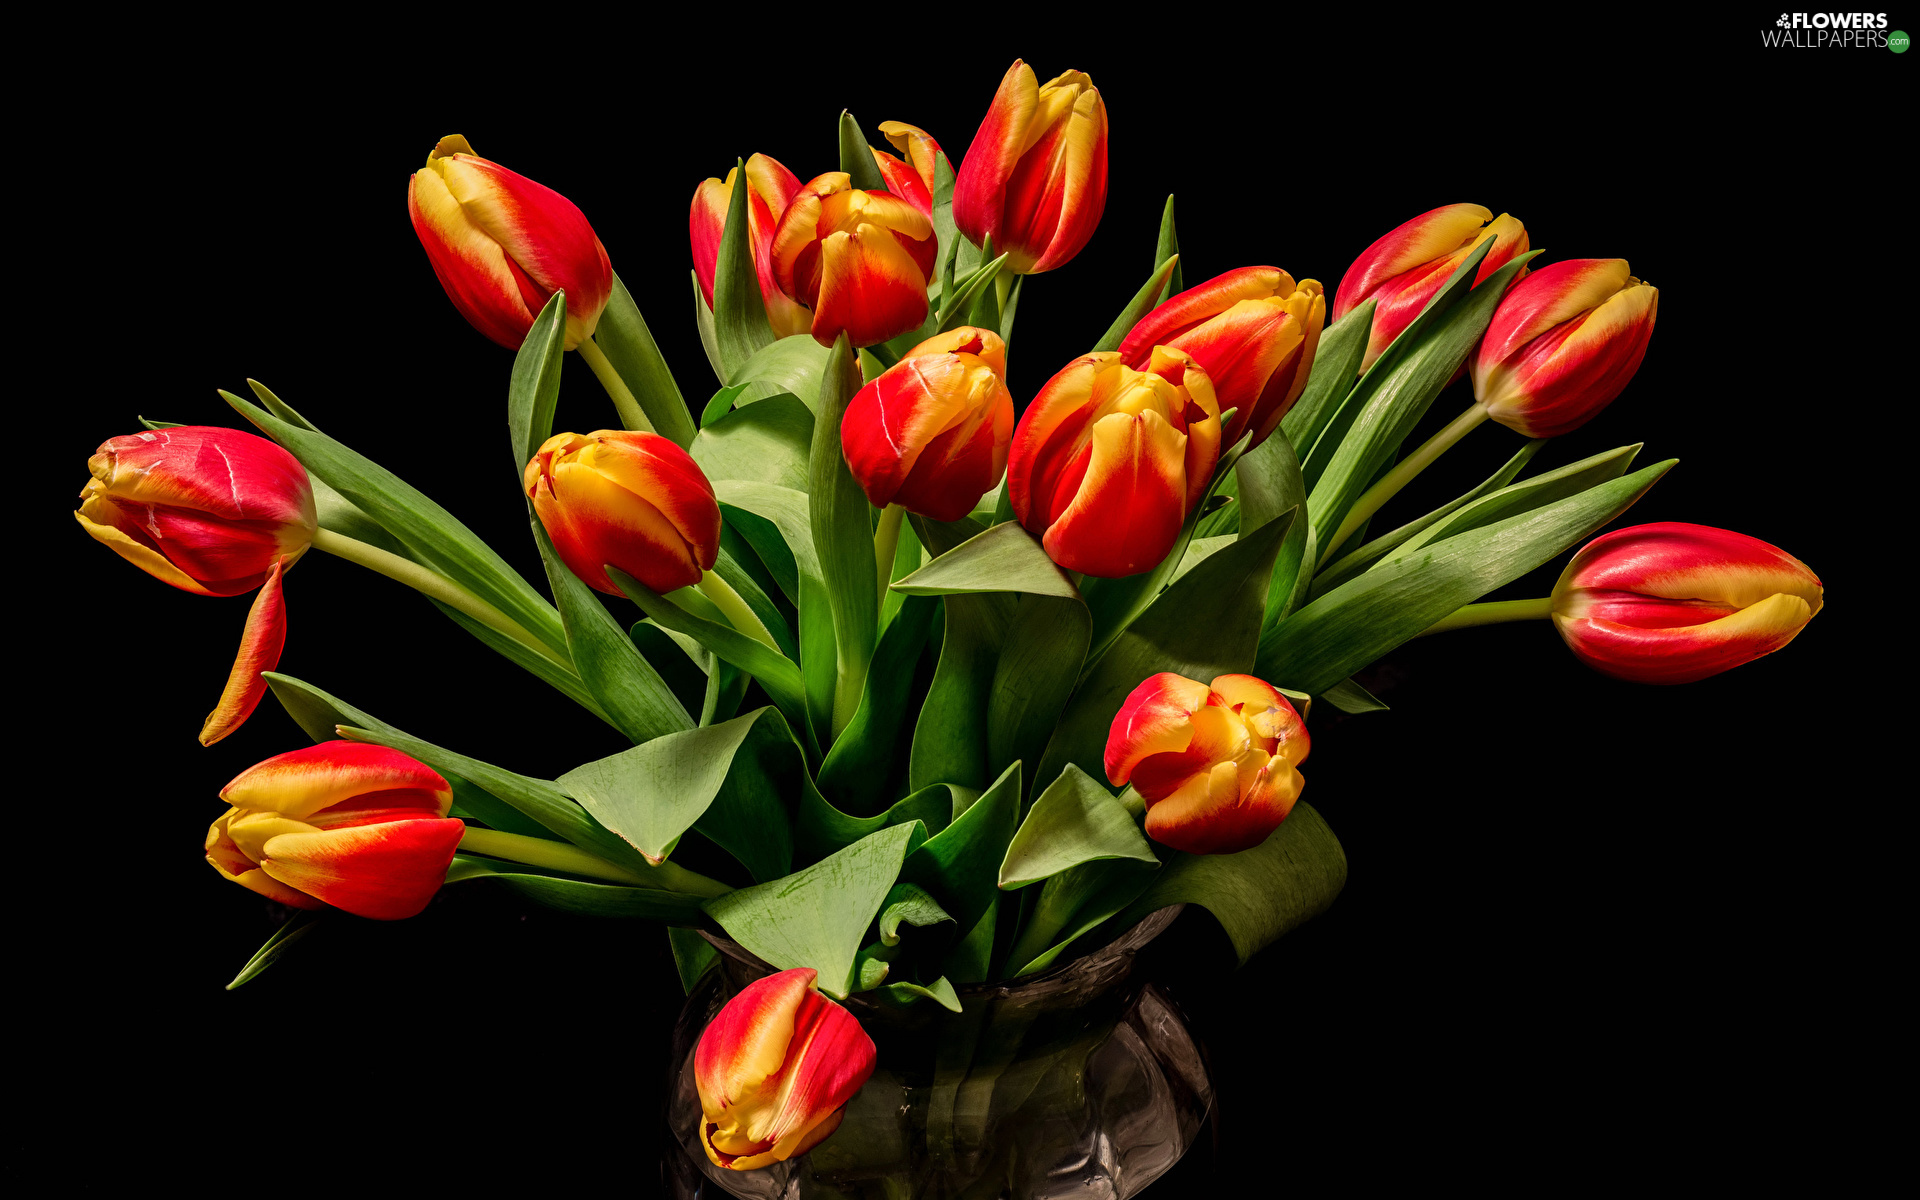 Vase, Red-Yellow, Tulips, Flowers, Black Background, bouquet